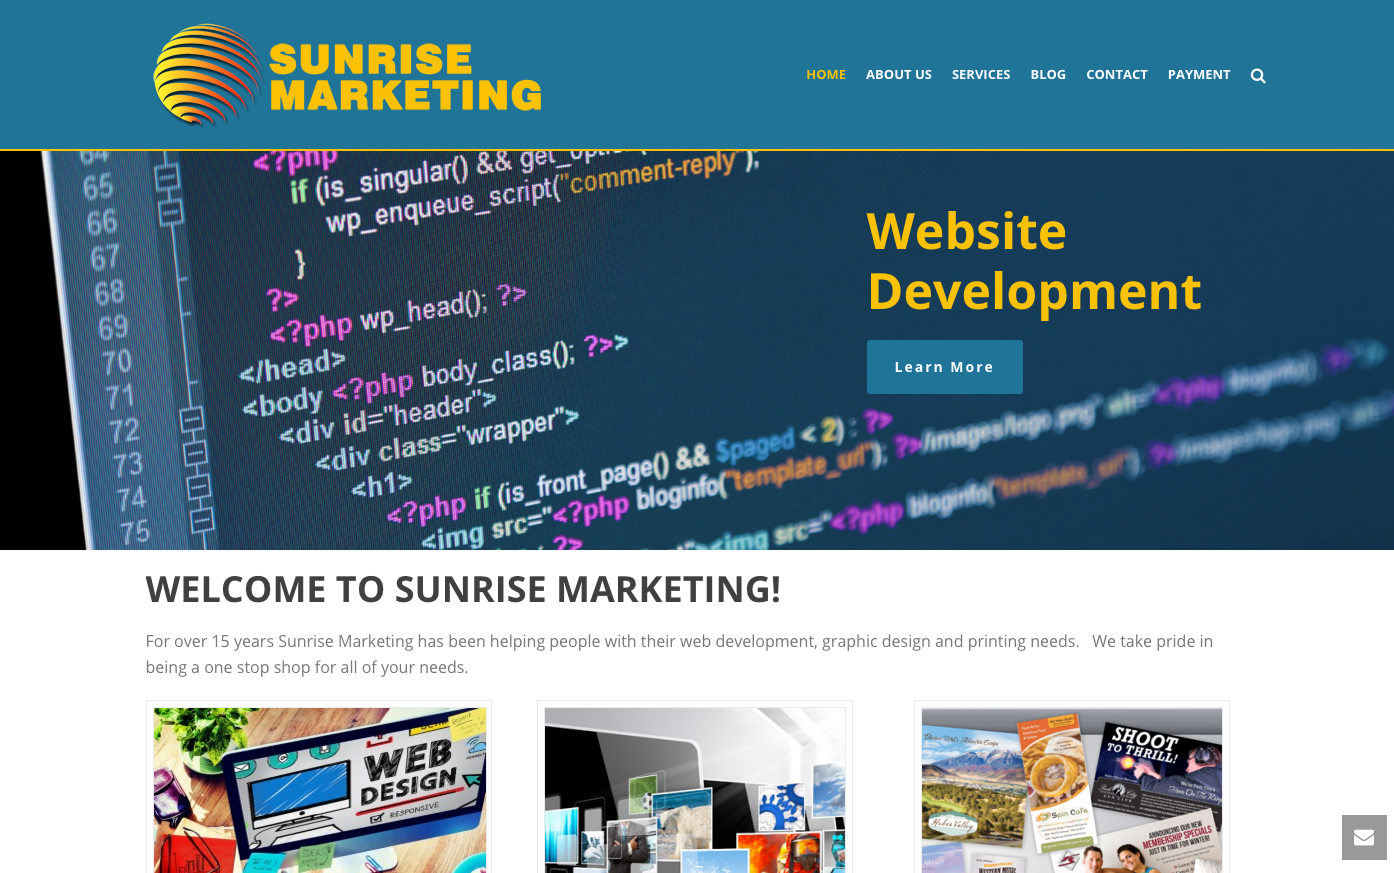 Web Development Through Sunrise Marketing